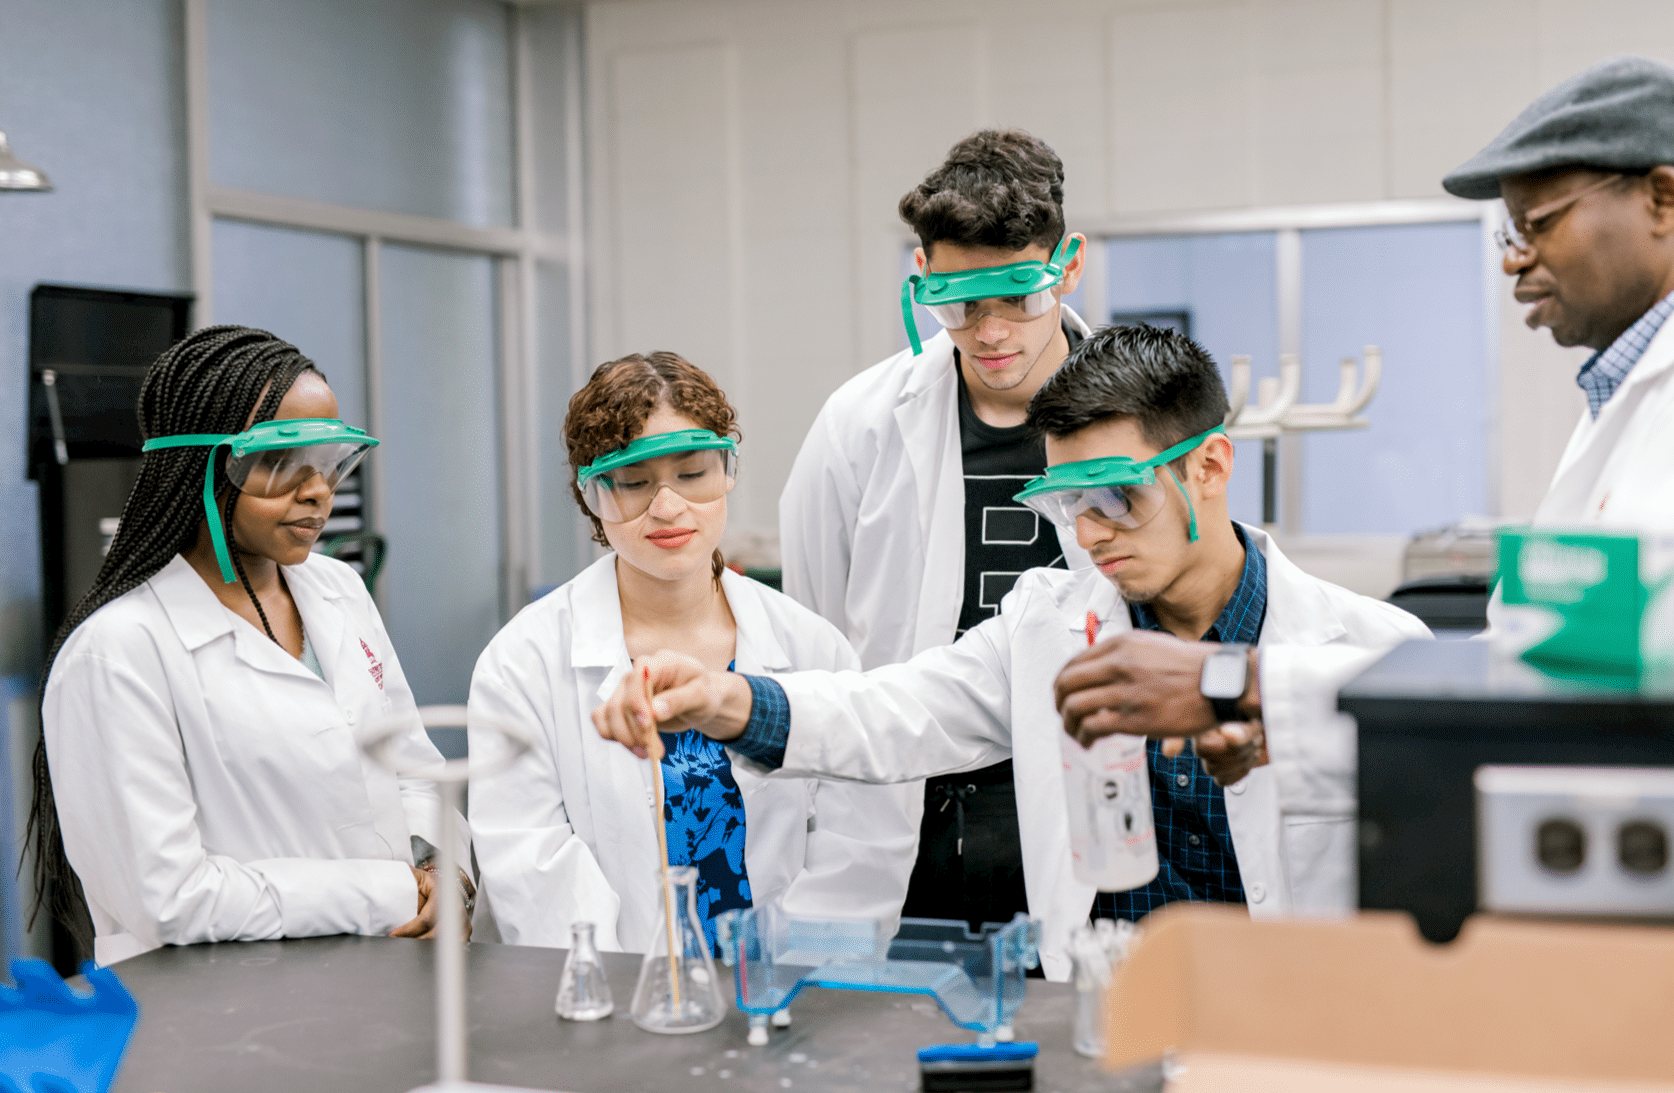 A student begins to mix something in a flask as his peers and professor stand around in observation.